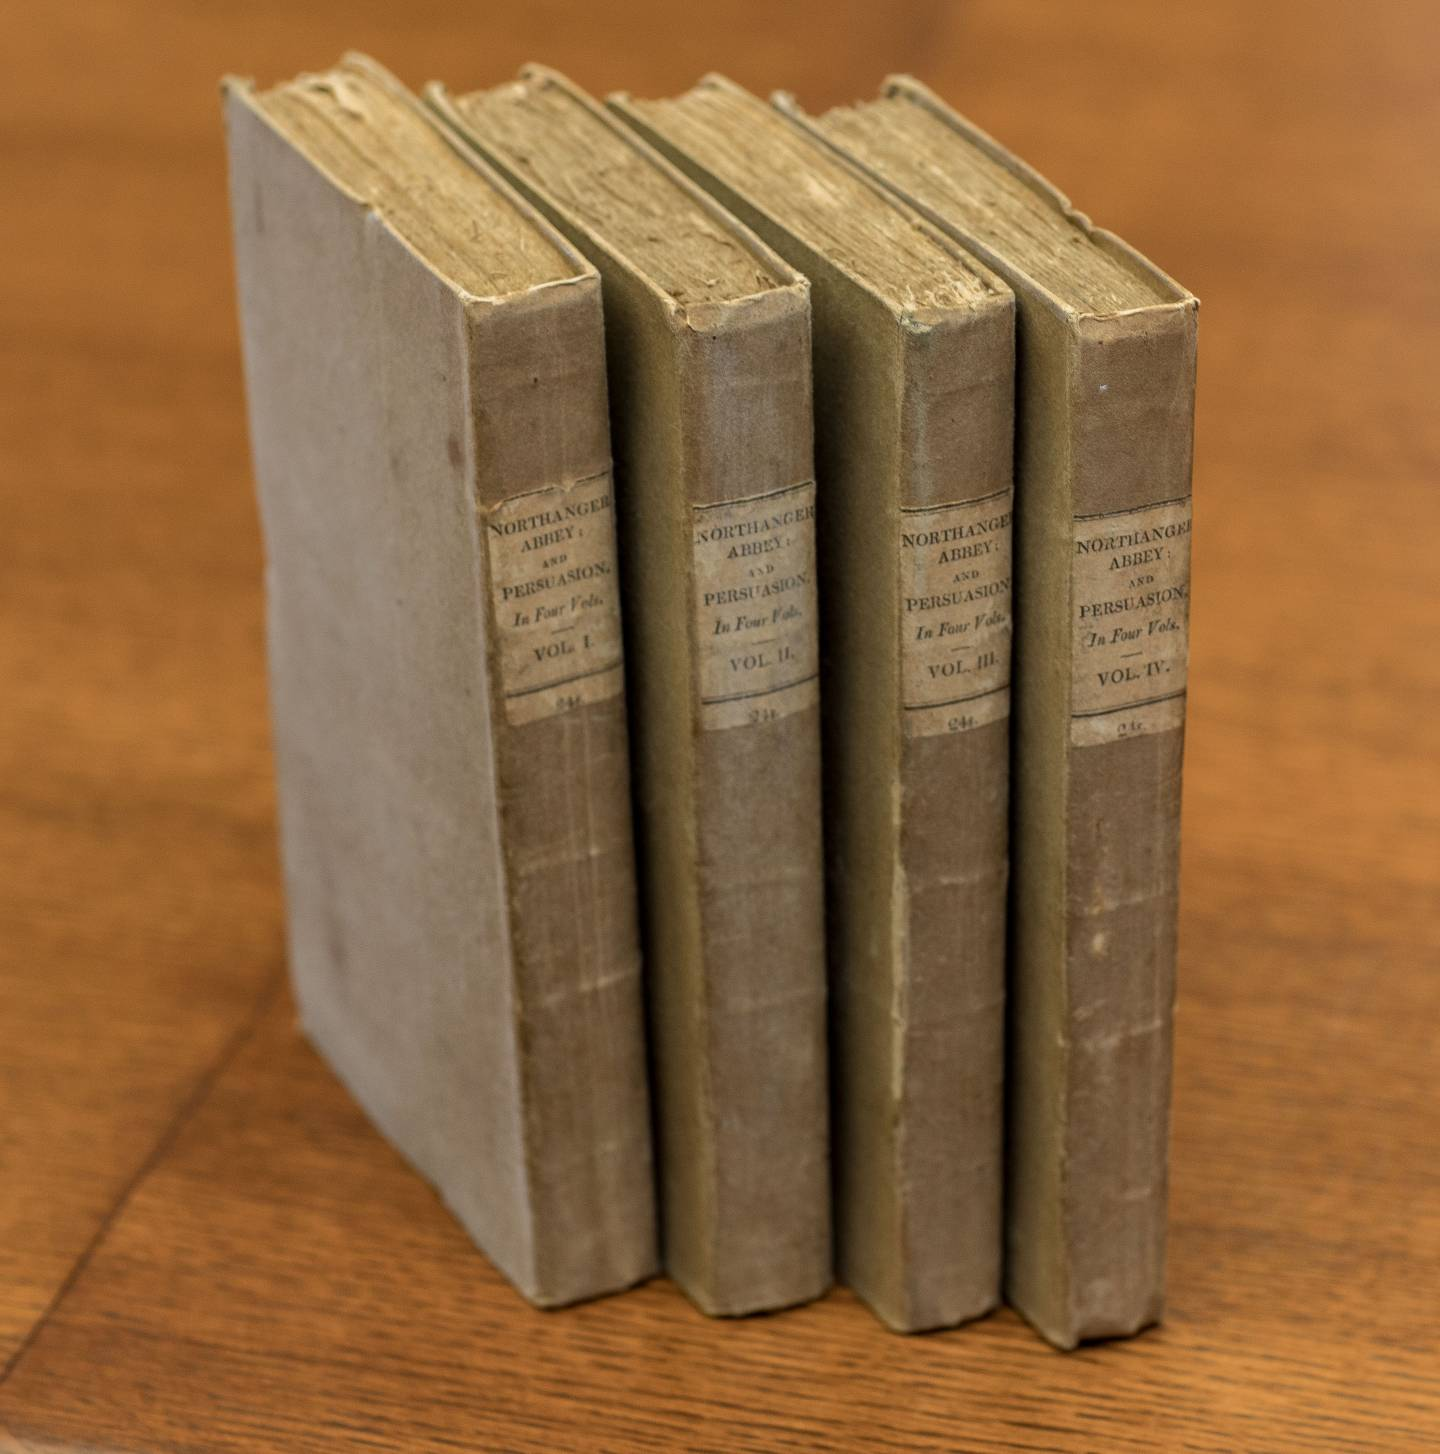 First editions of Northanger Abbey